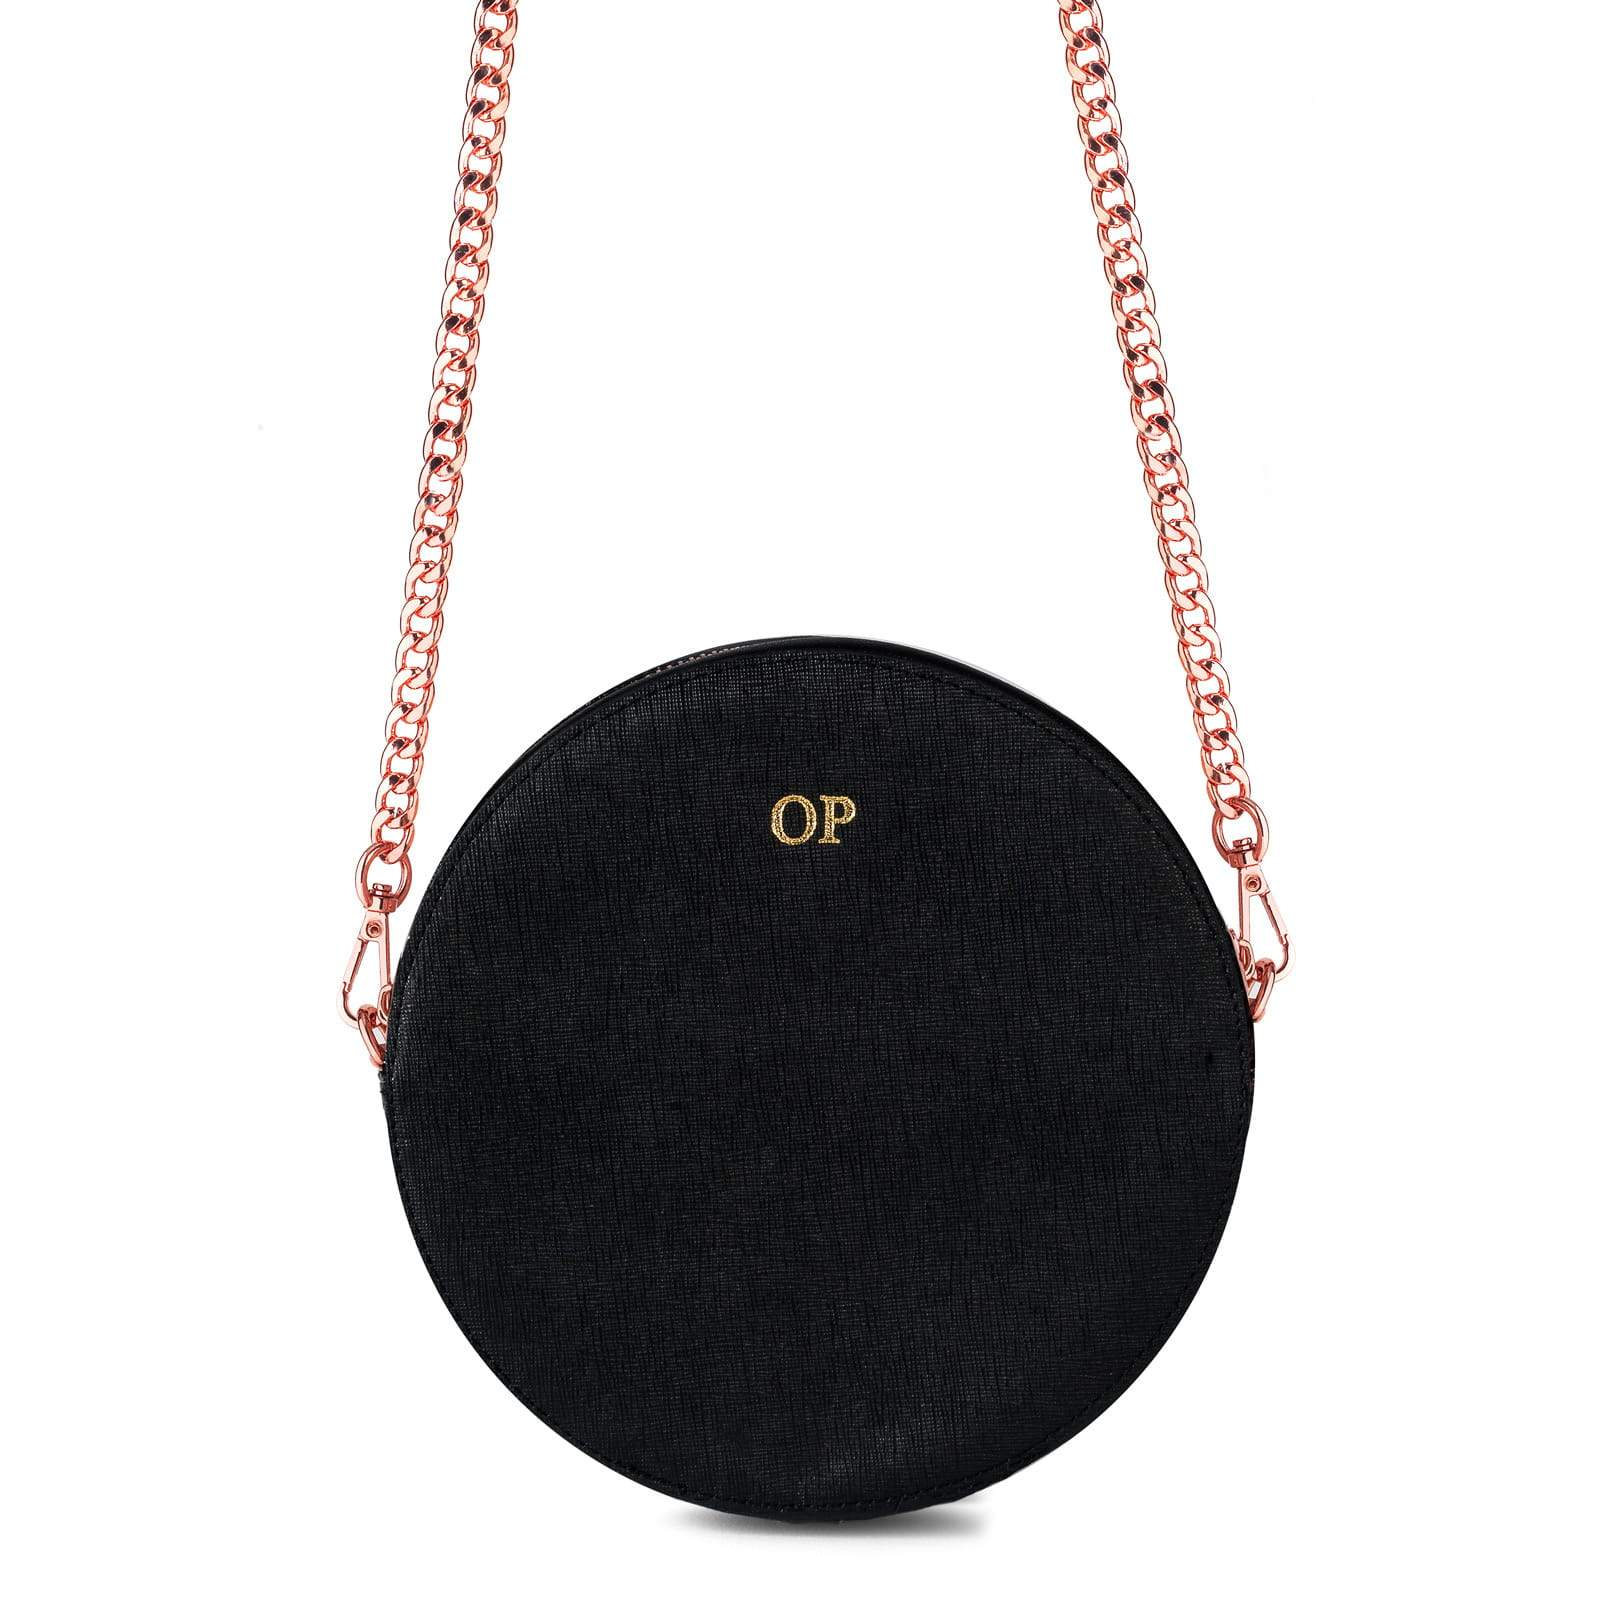 Personalised Black Saffiano Leather Round Crossbody Bag